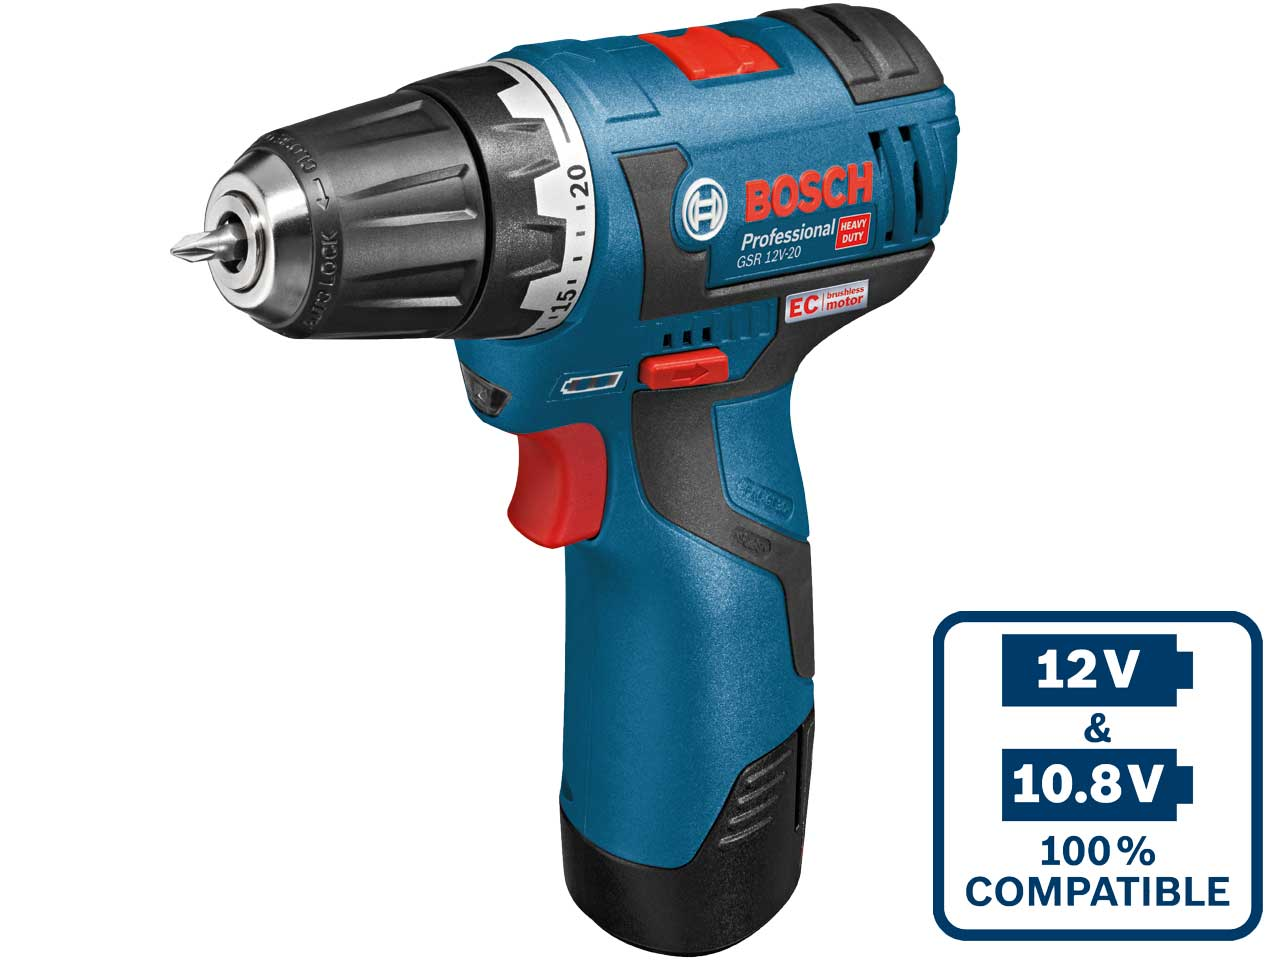 bosch gsr12v20 12v 2 x 2 0ah li ion brushless drill driver 10mm chuck. Black Bedroom Furniture Sets. Home Design Ideas